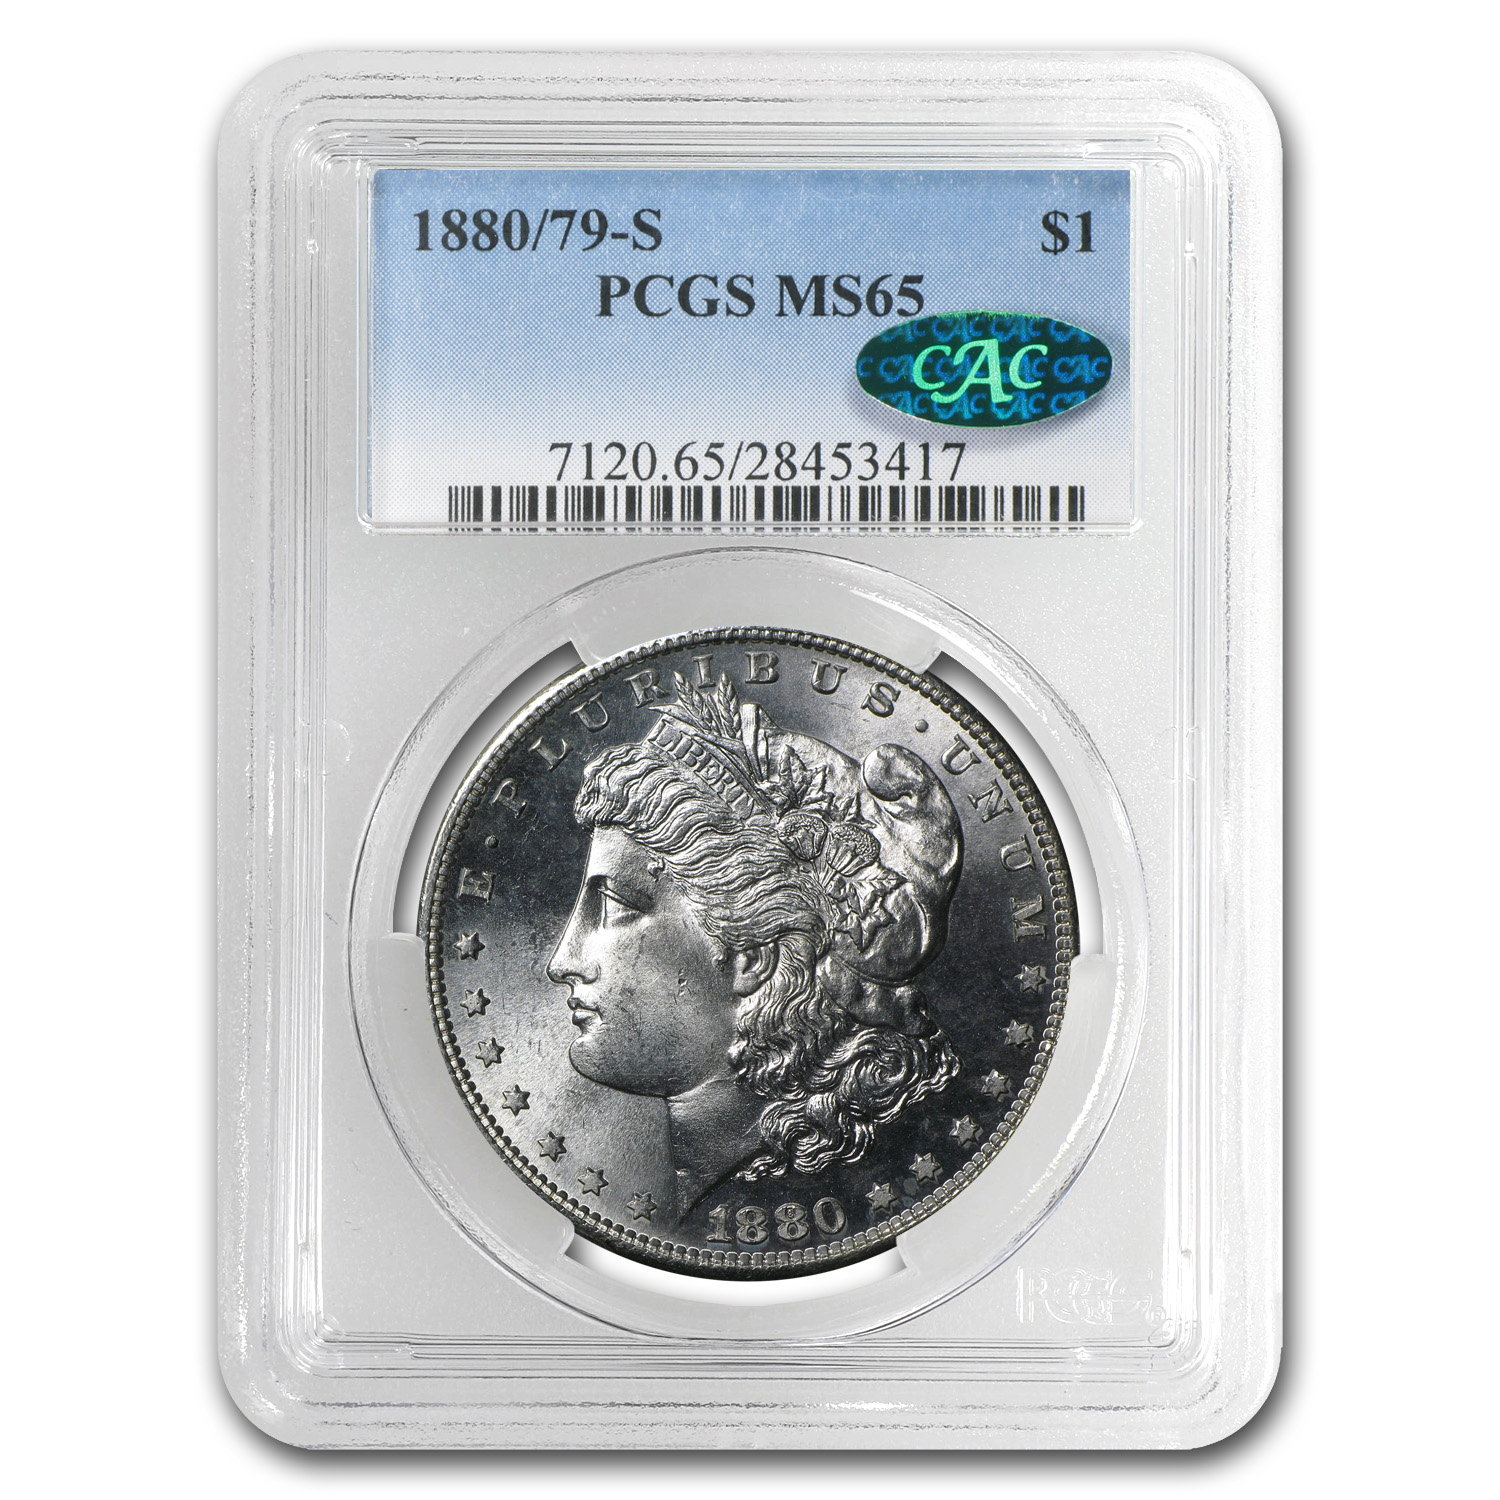 1880/79-S Morgan Dollar - MS-65 PCGS - CAC